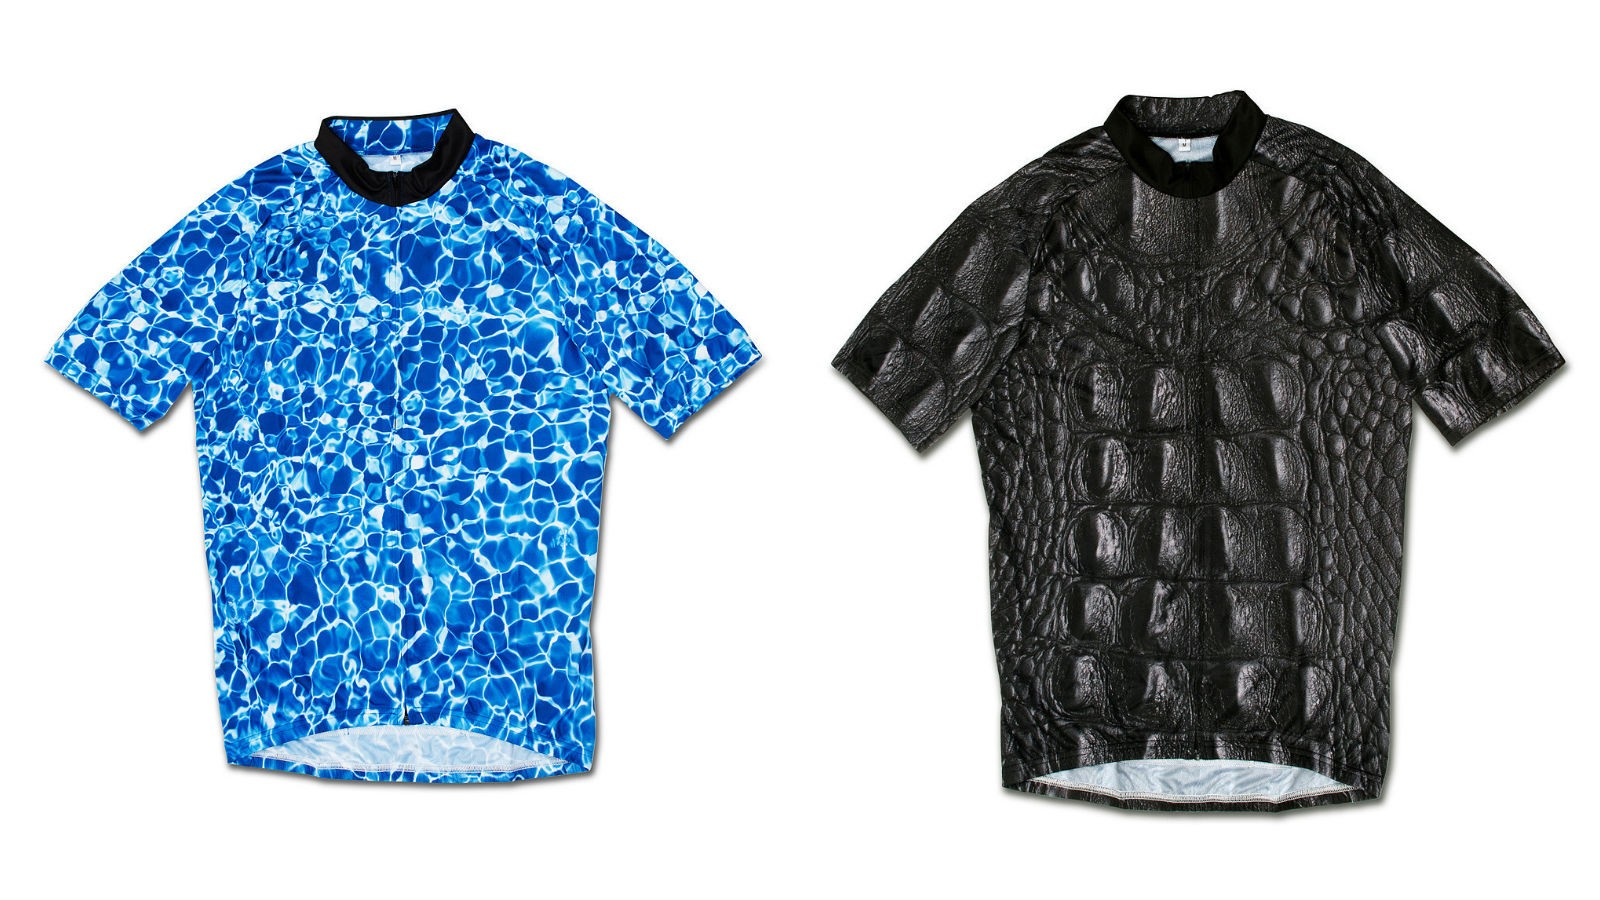 Is that a crocodile swimming in your pool? Nope just some of the jerseys from South Cycling